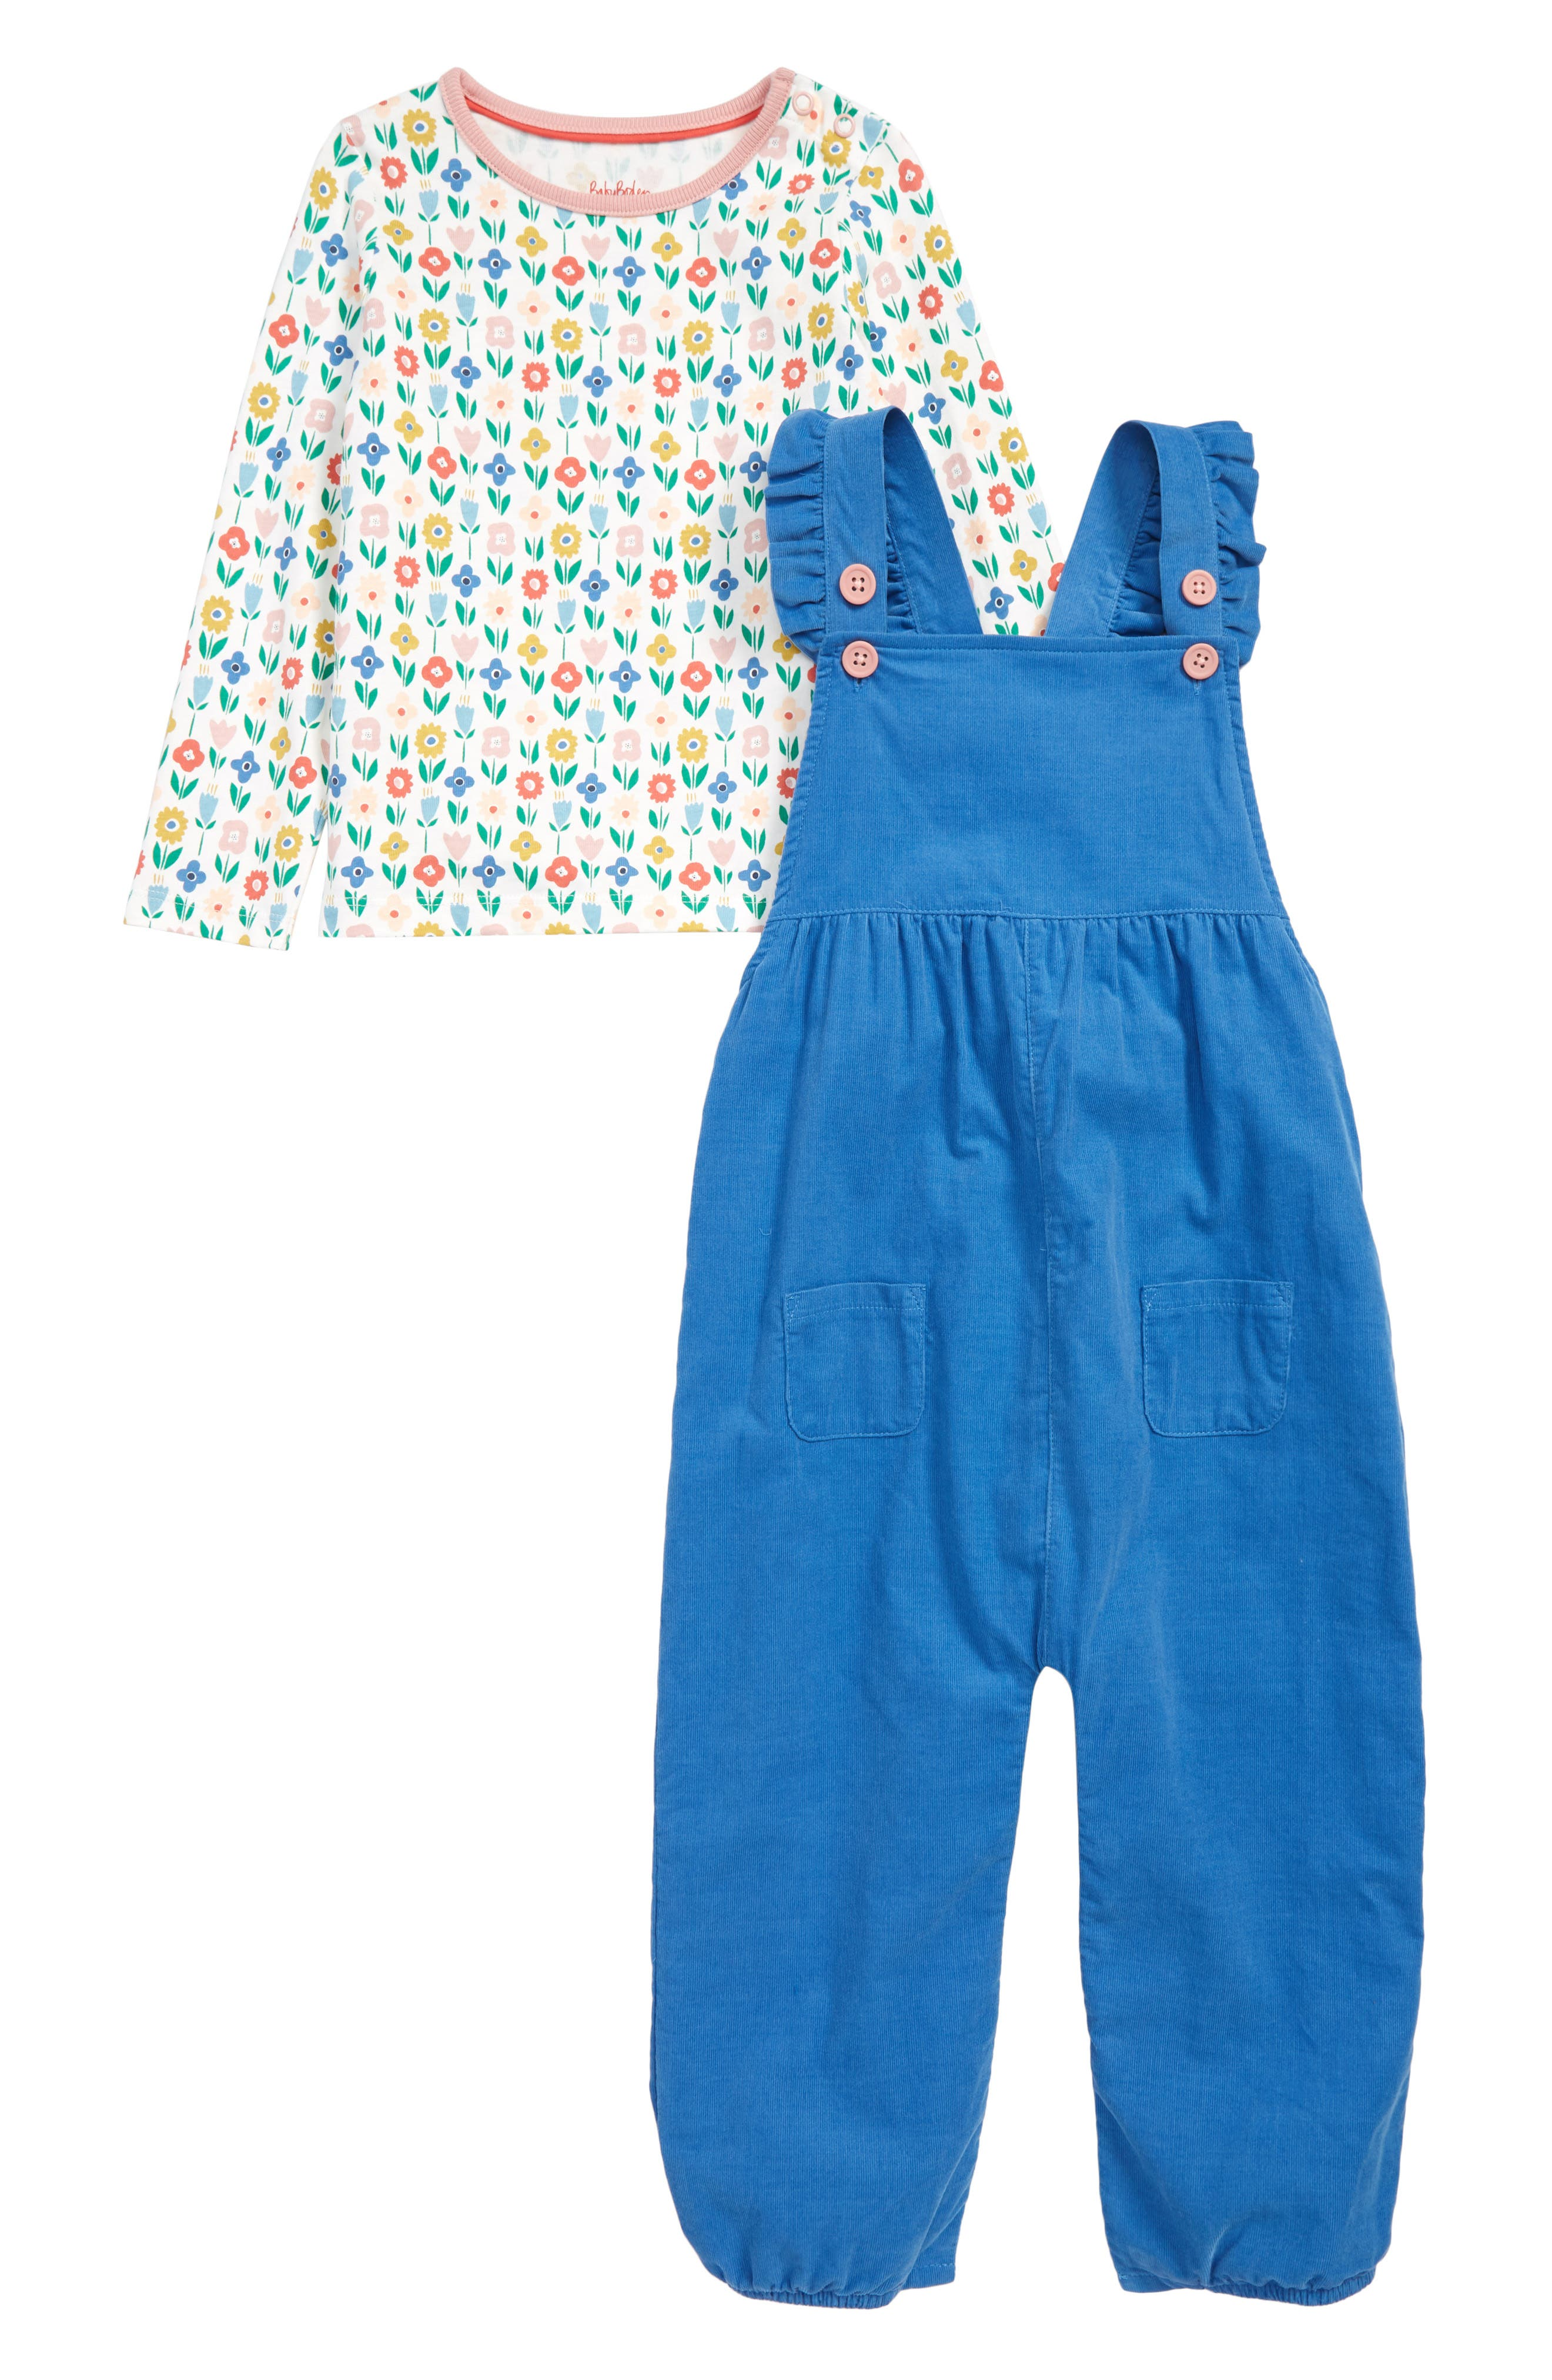 MINI BODEN Flower Patch Tee & Frilly Corduroy Overalls Set, Main, color, 400